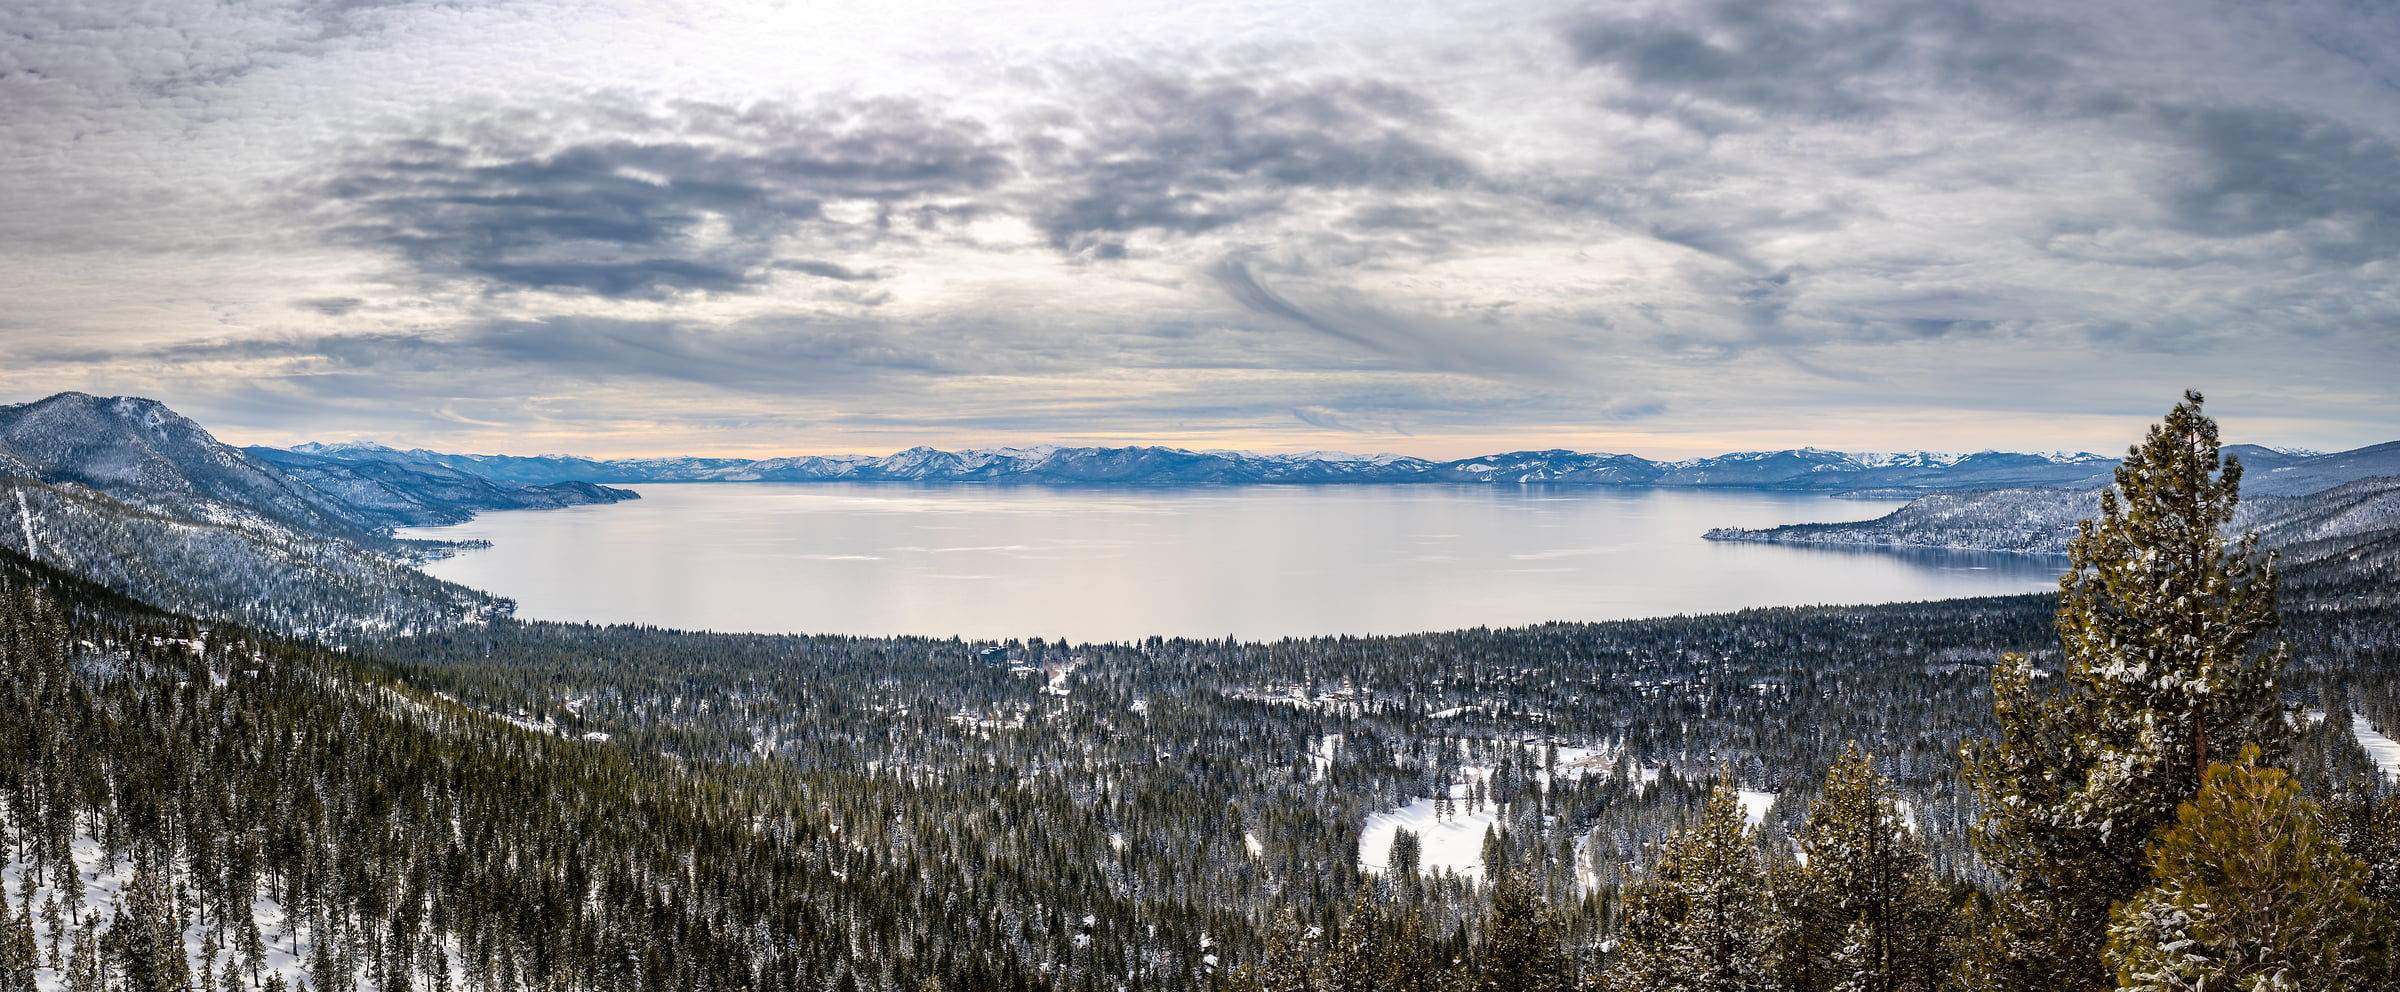 274 megapixels! A very high resolution, landscape photo of Lake Tahoe in winter; landscape photograph created by Justin Katz in Mount Rose Highway, Lake Tahoe, Nevada